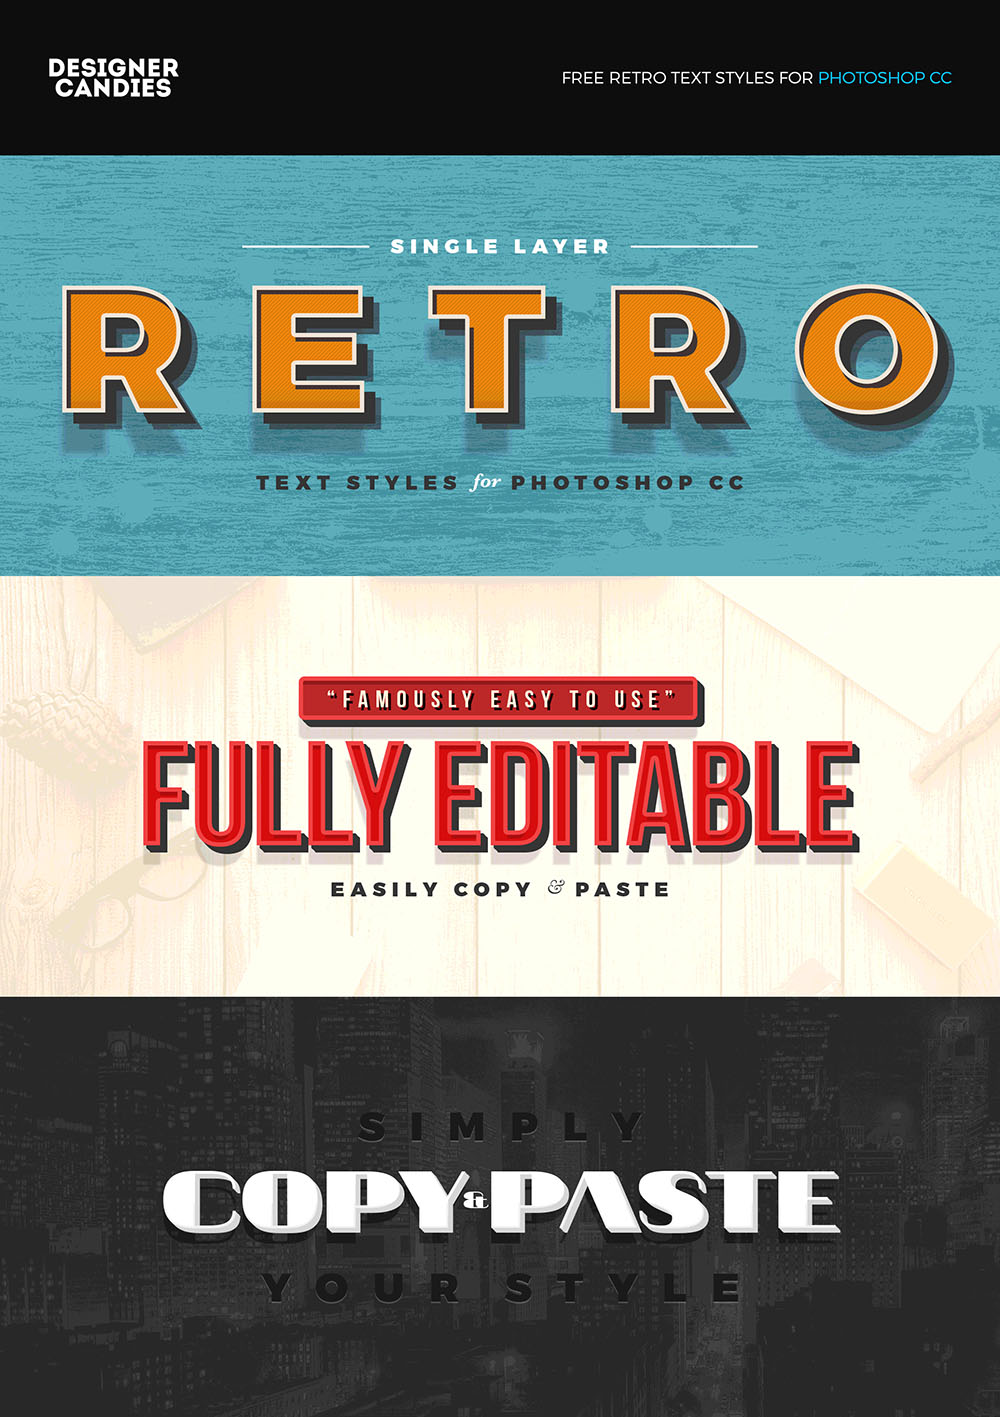 Free Retro Text Styles forPhotoshop CC